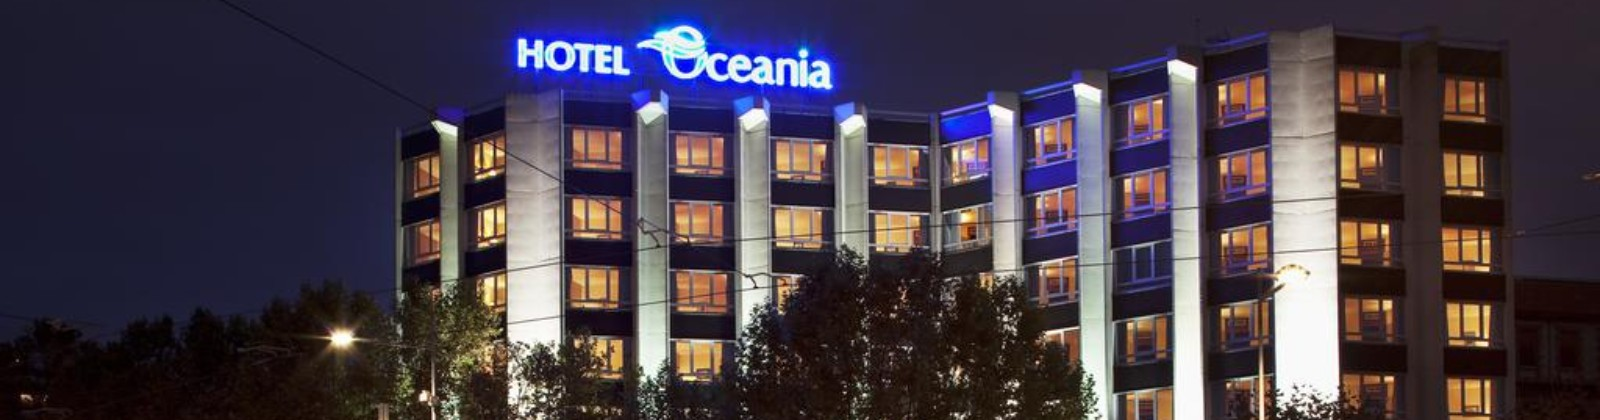 oceania clermont ferrand olevene hotel restaurant reunion meeting convention